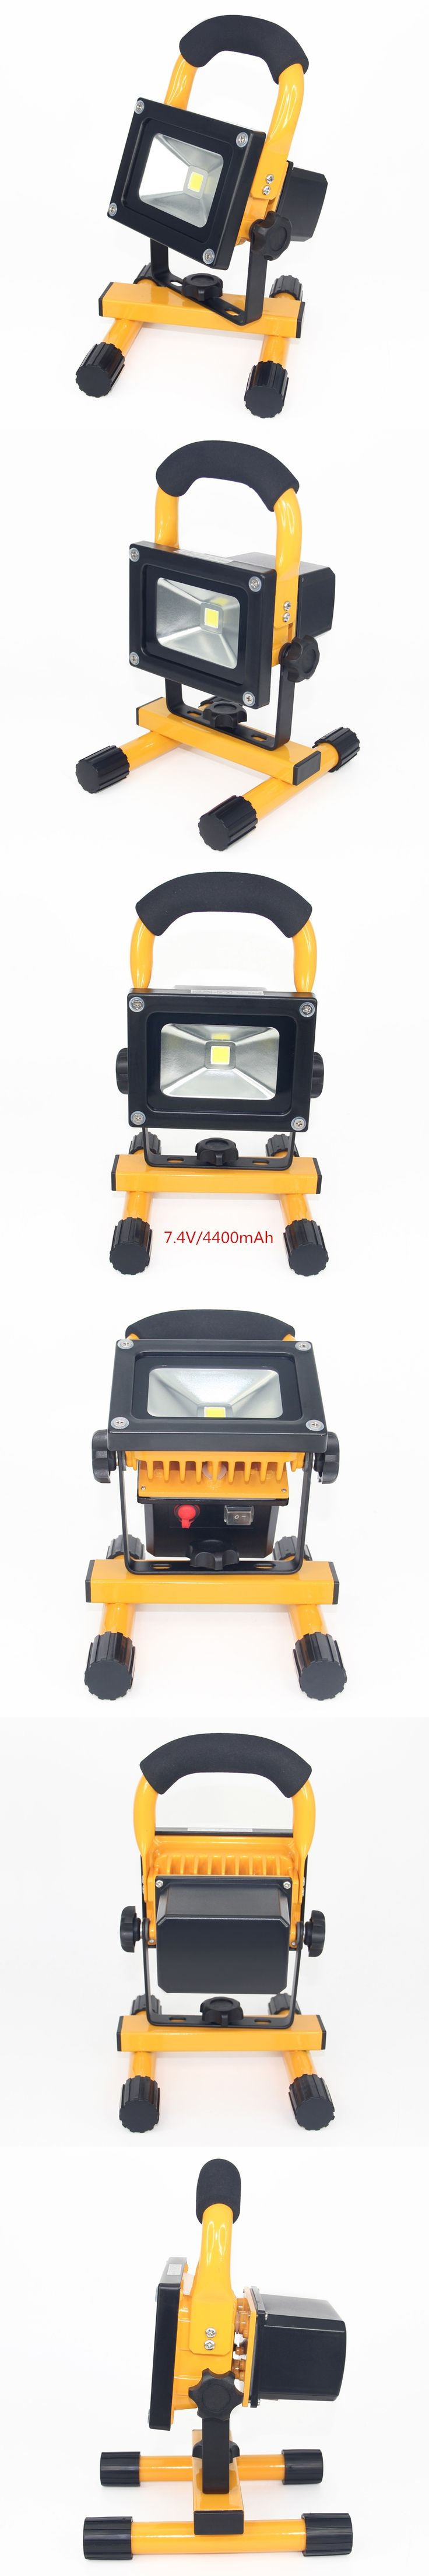 10W LED Flood Light rechargeable IP65 Waterproof camping lamp Spotlight LED Outdoor Street Wall Lamps Exterior Lighting F024